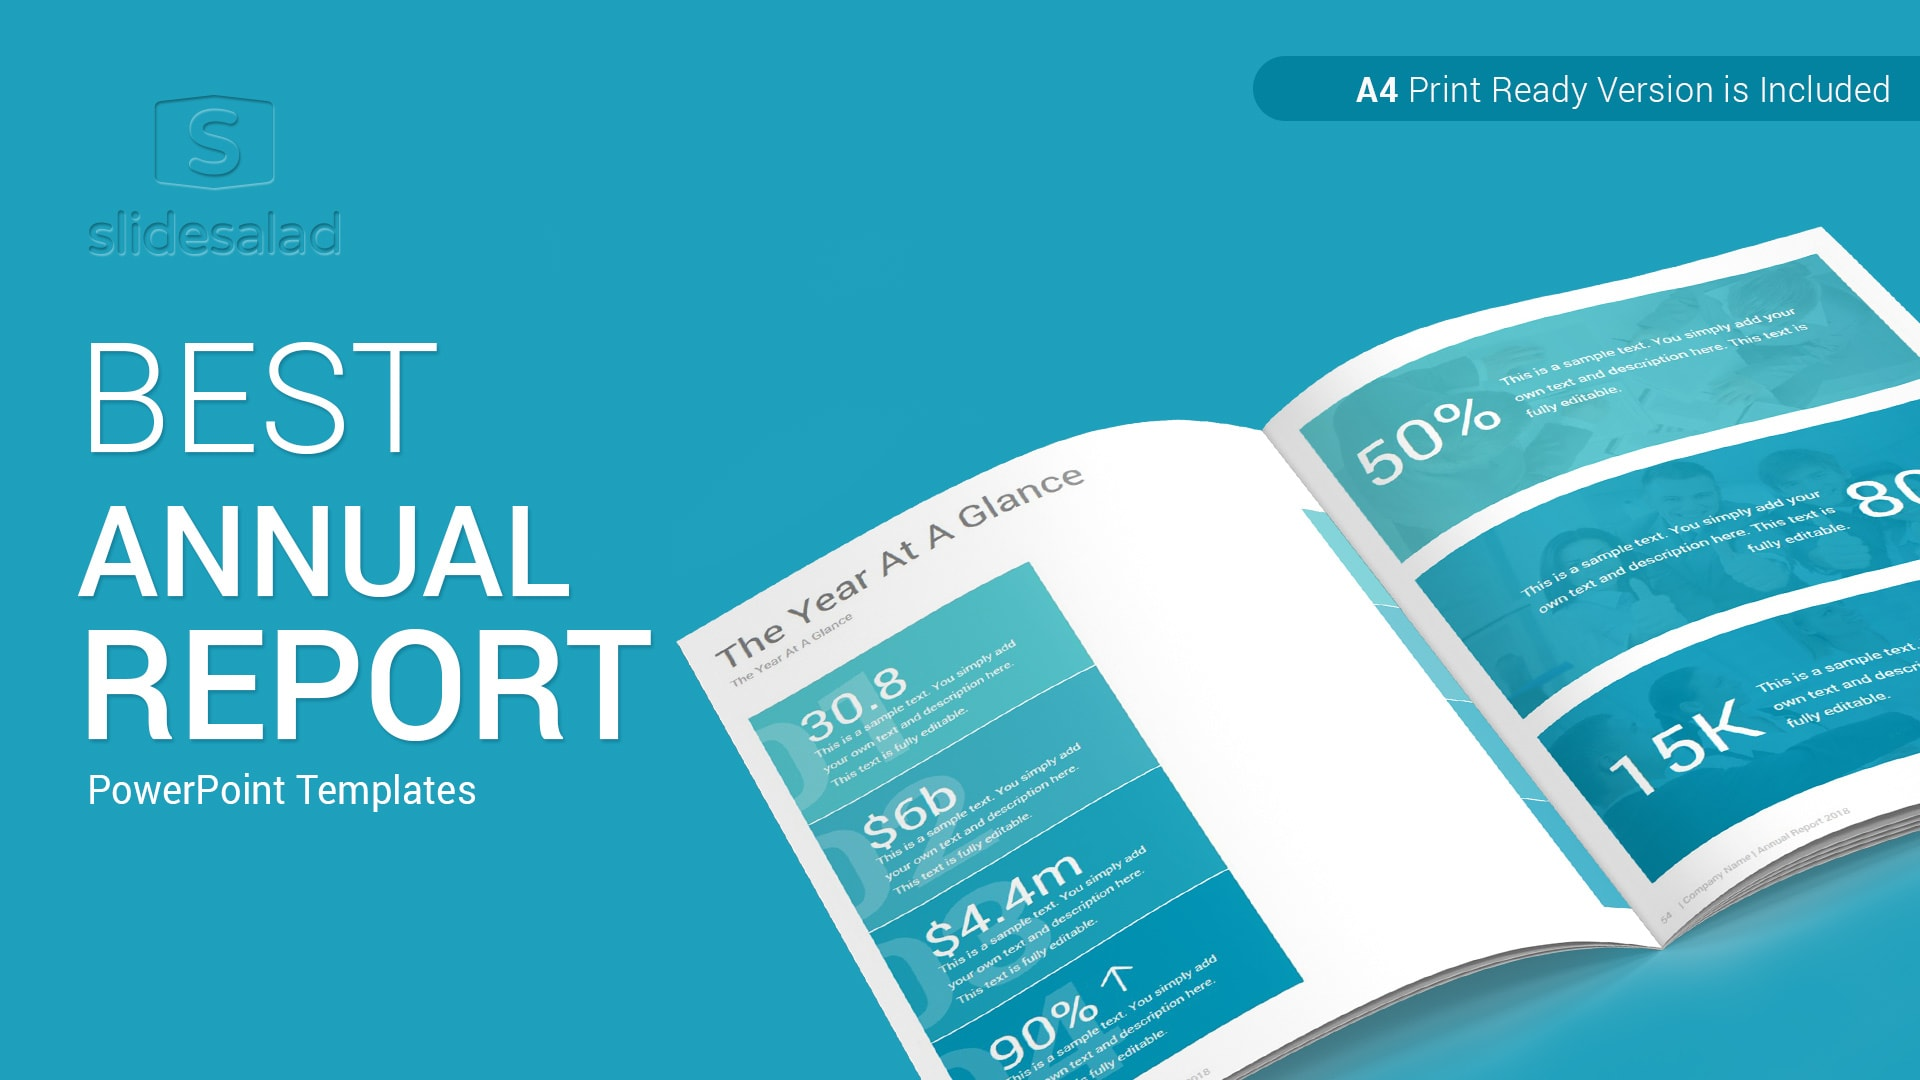 Annual Report PowerPoint Presentation Templates – Elegant Business PowerPoint Template